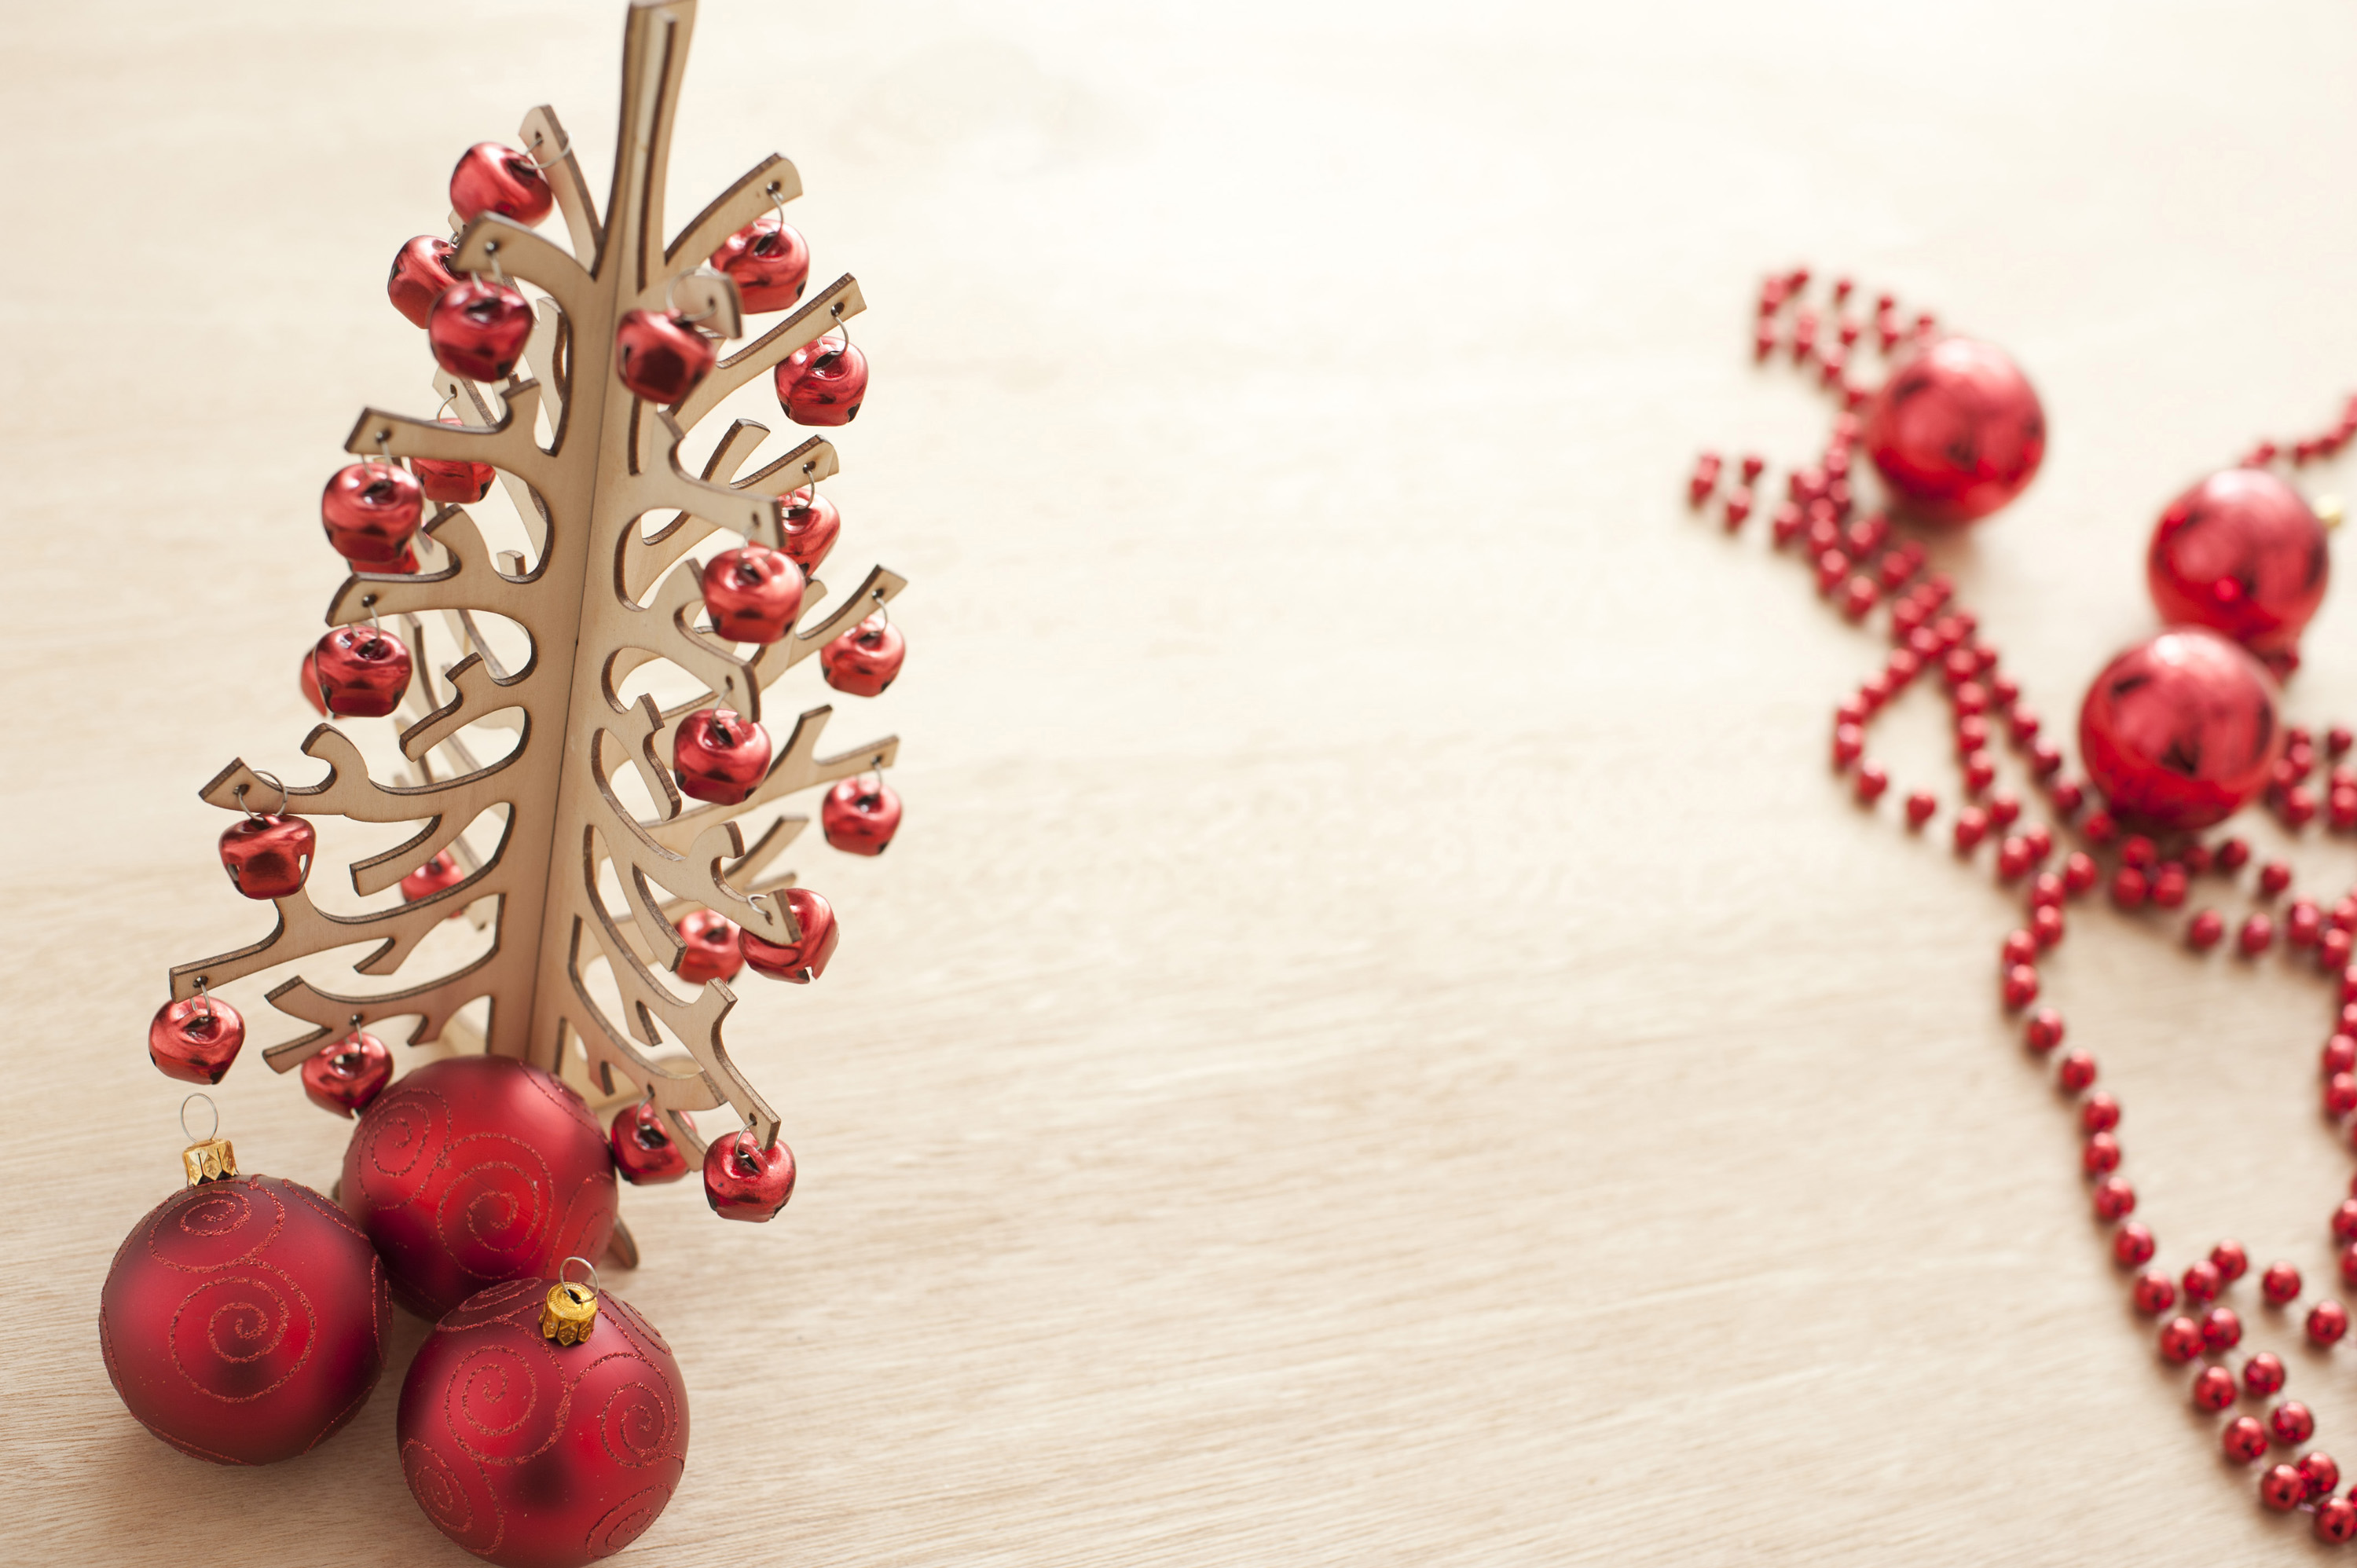 Wooden Christmas tree with red decorations on a modern table surface